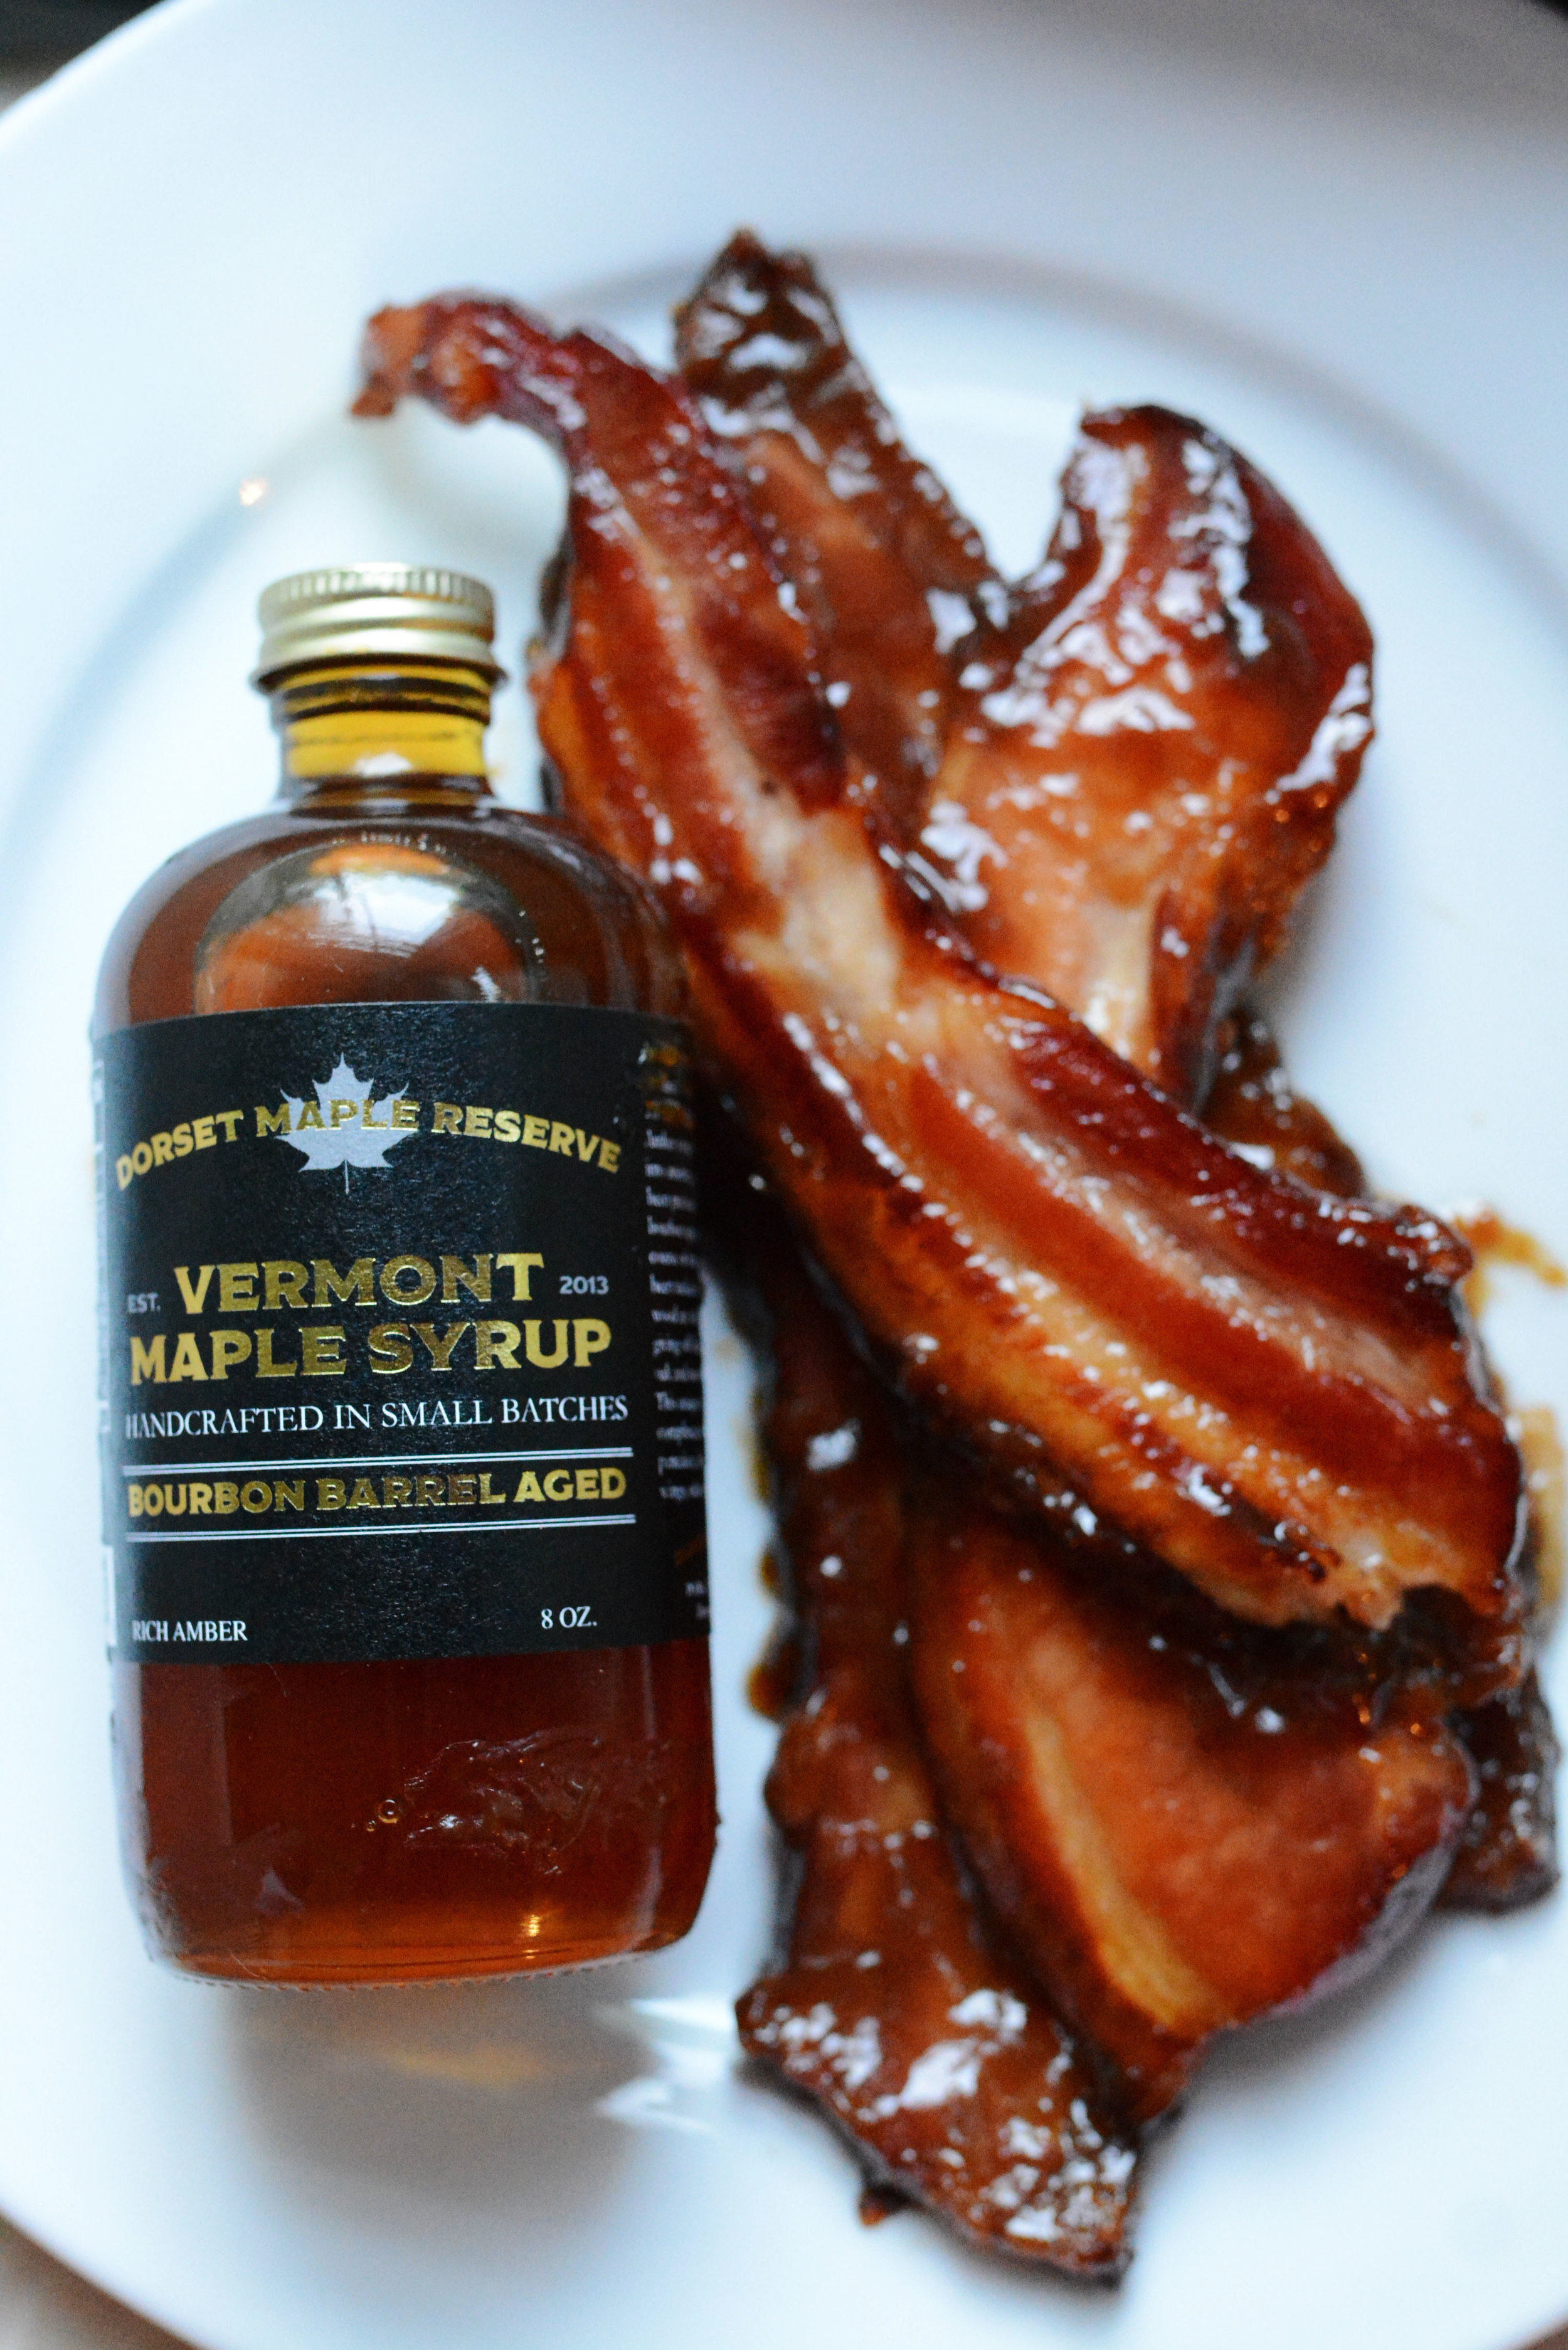 Maple Candied Bacon - 1 lb good quality bacon2 tbsp rich amber maple syrup1/4 cup brown sugar2 tsp dijon mustard1/2 tsp kosher salt 1/4 tsp cayenne pepperPreheat oven to 350 degrees.Wrap baking sheet with tin foil and top with wire rack.In a bowl add all ingredients and mix well, add bacon and coat evenly with mixture.Place bacon in a single layer onto wire rack. Bake for 30-35 minutes. Remove from oven and let cool for 5 minutes (don't let them sit for too long or they will stick.